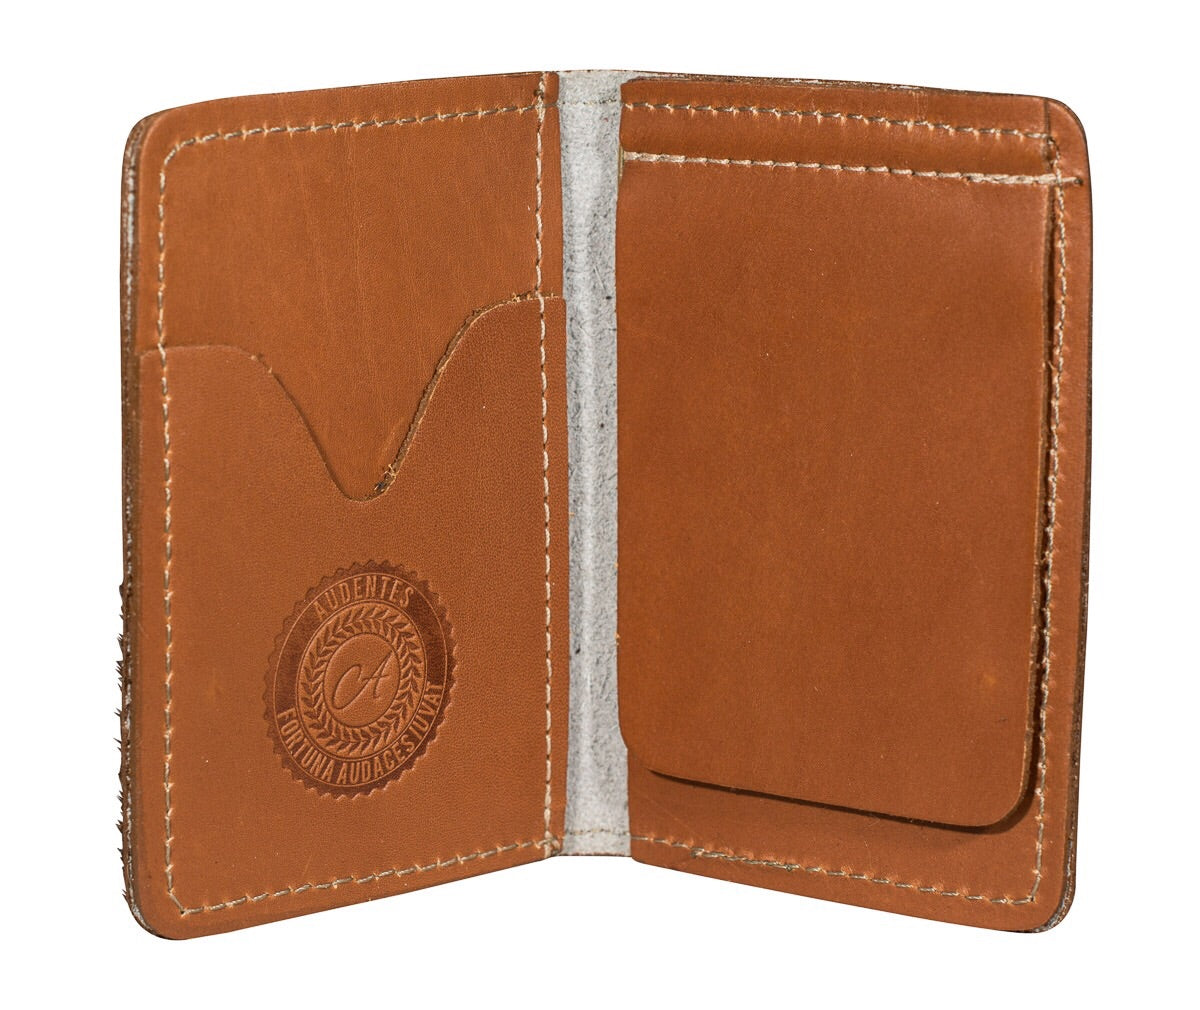 Speckled and tan moneyclip wallet